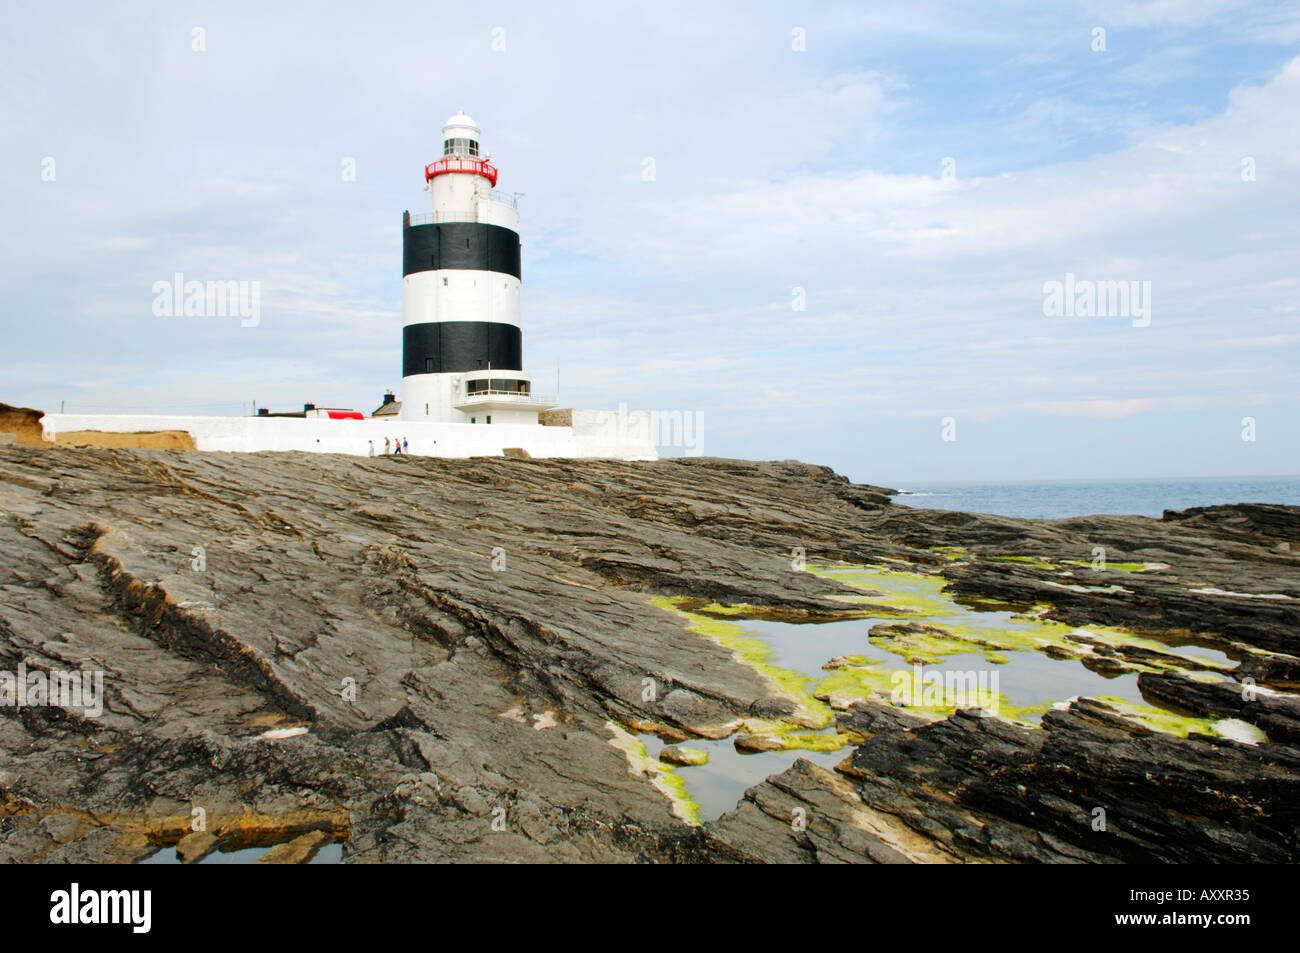 Hook Head lighthouse at the mouth of the River Barrow and Waterford Harbour in County Wexford Ireland dates from the 13th C. - Stock Image